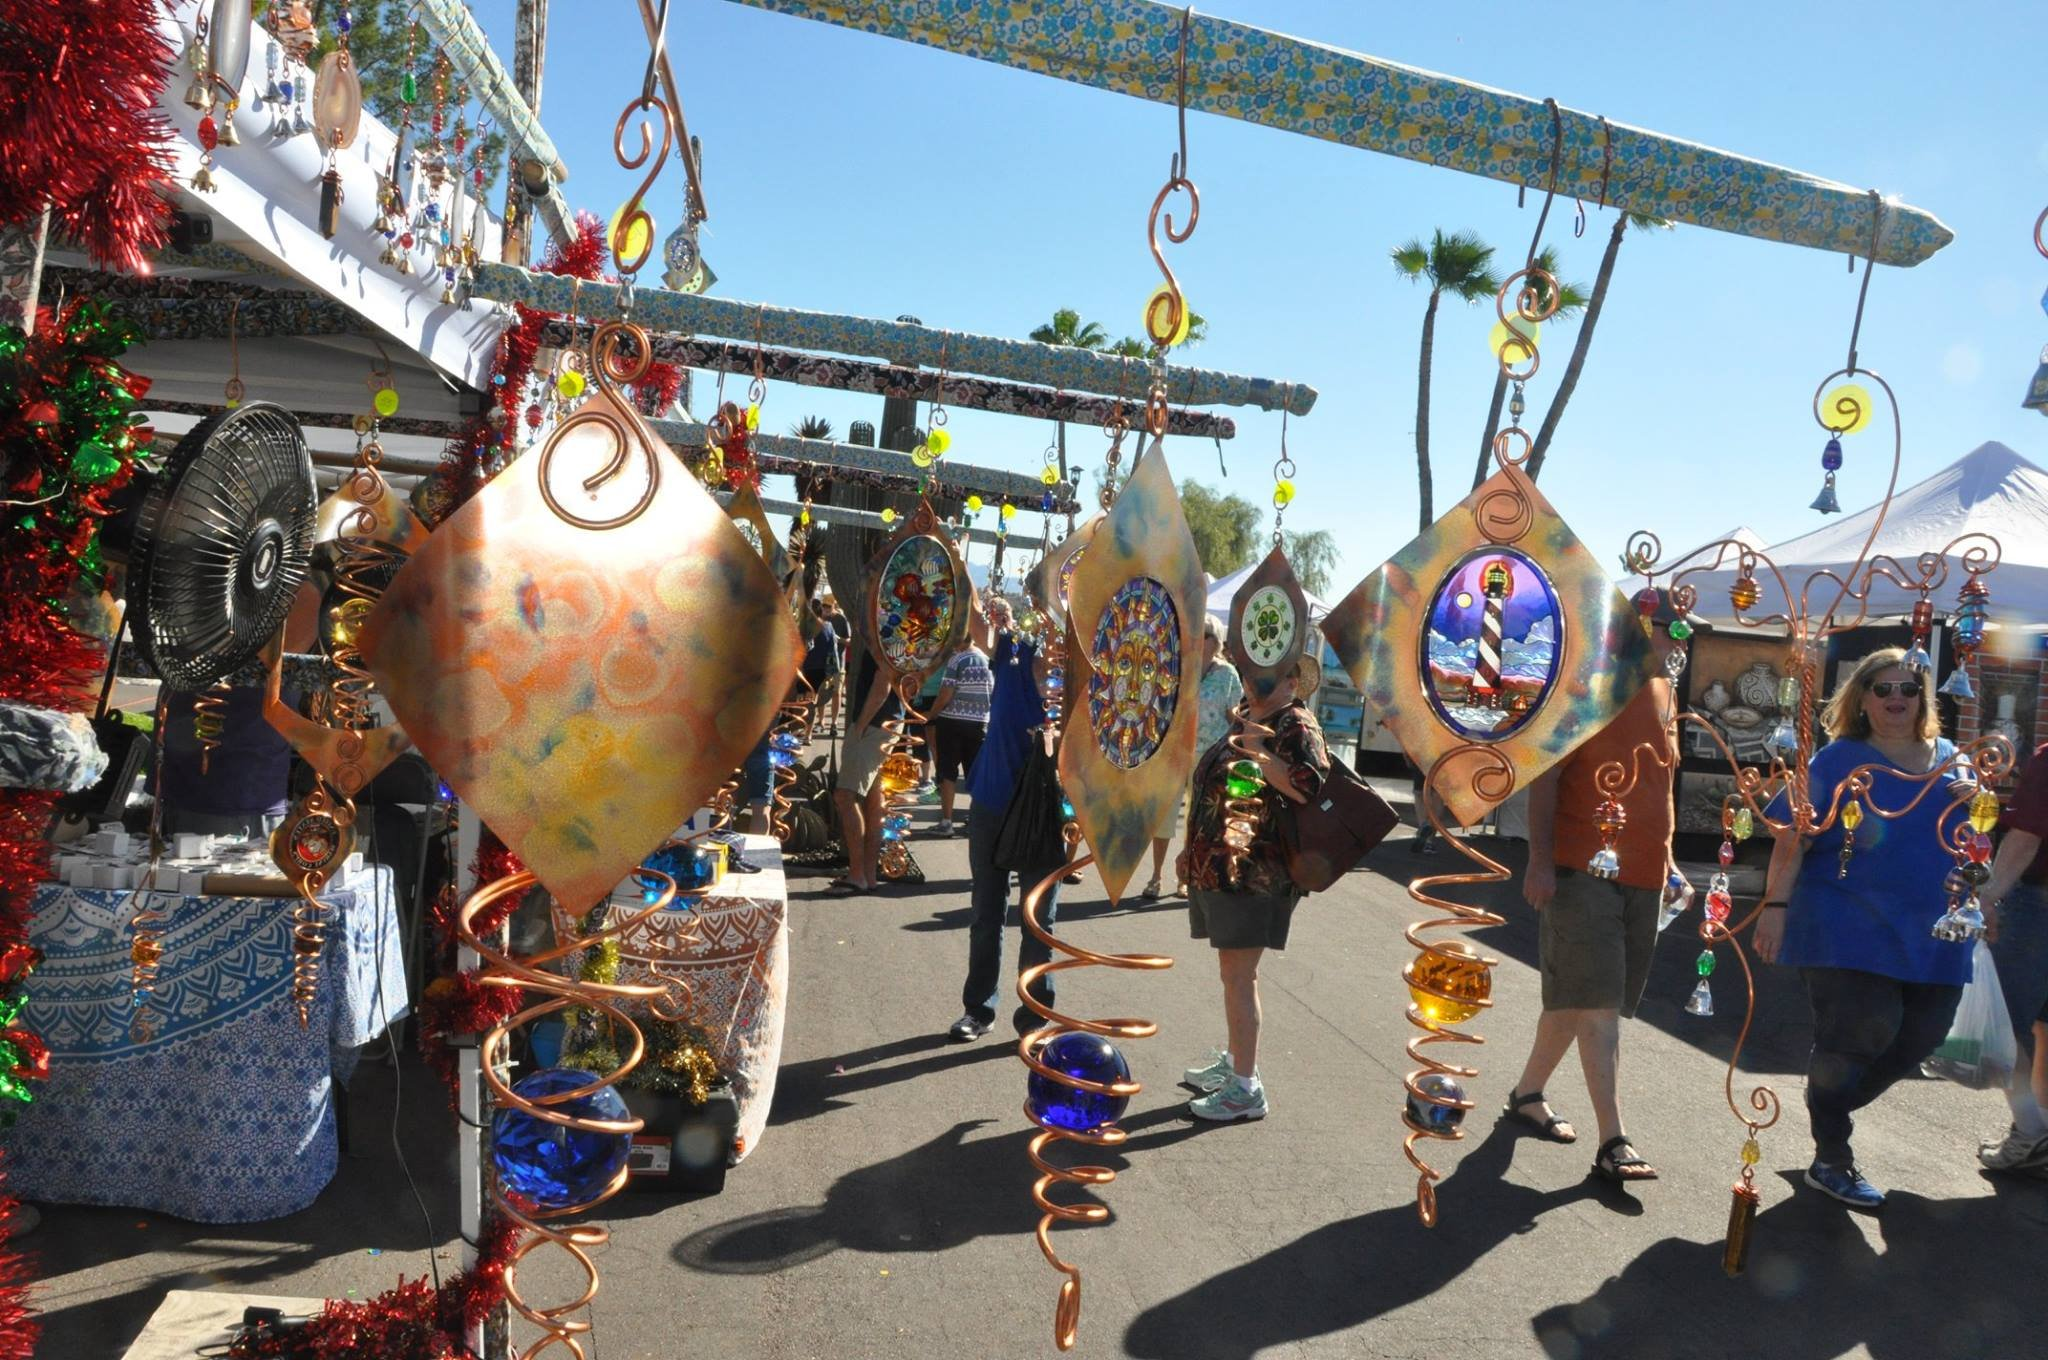 The fair will feature 500 artisans from around the U.S. and the world. (Source: Fountain Hills Chamber of Commerce)